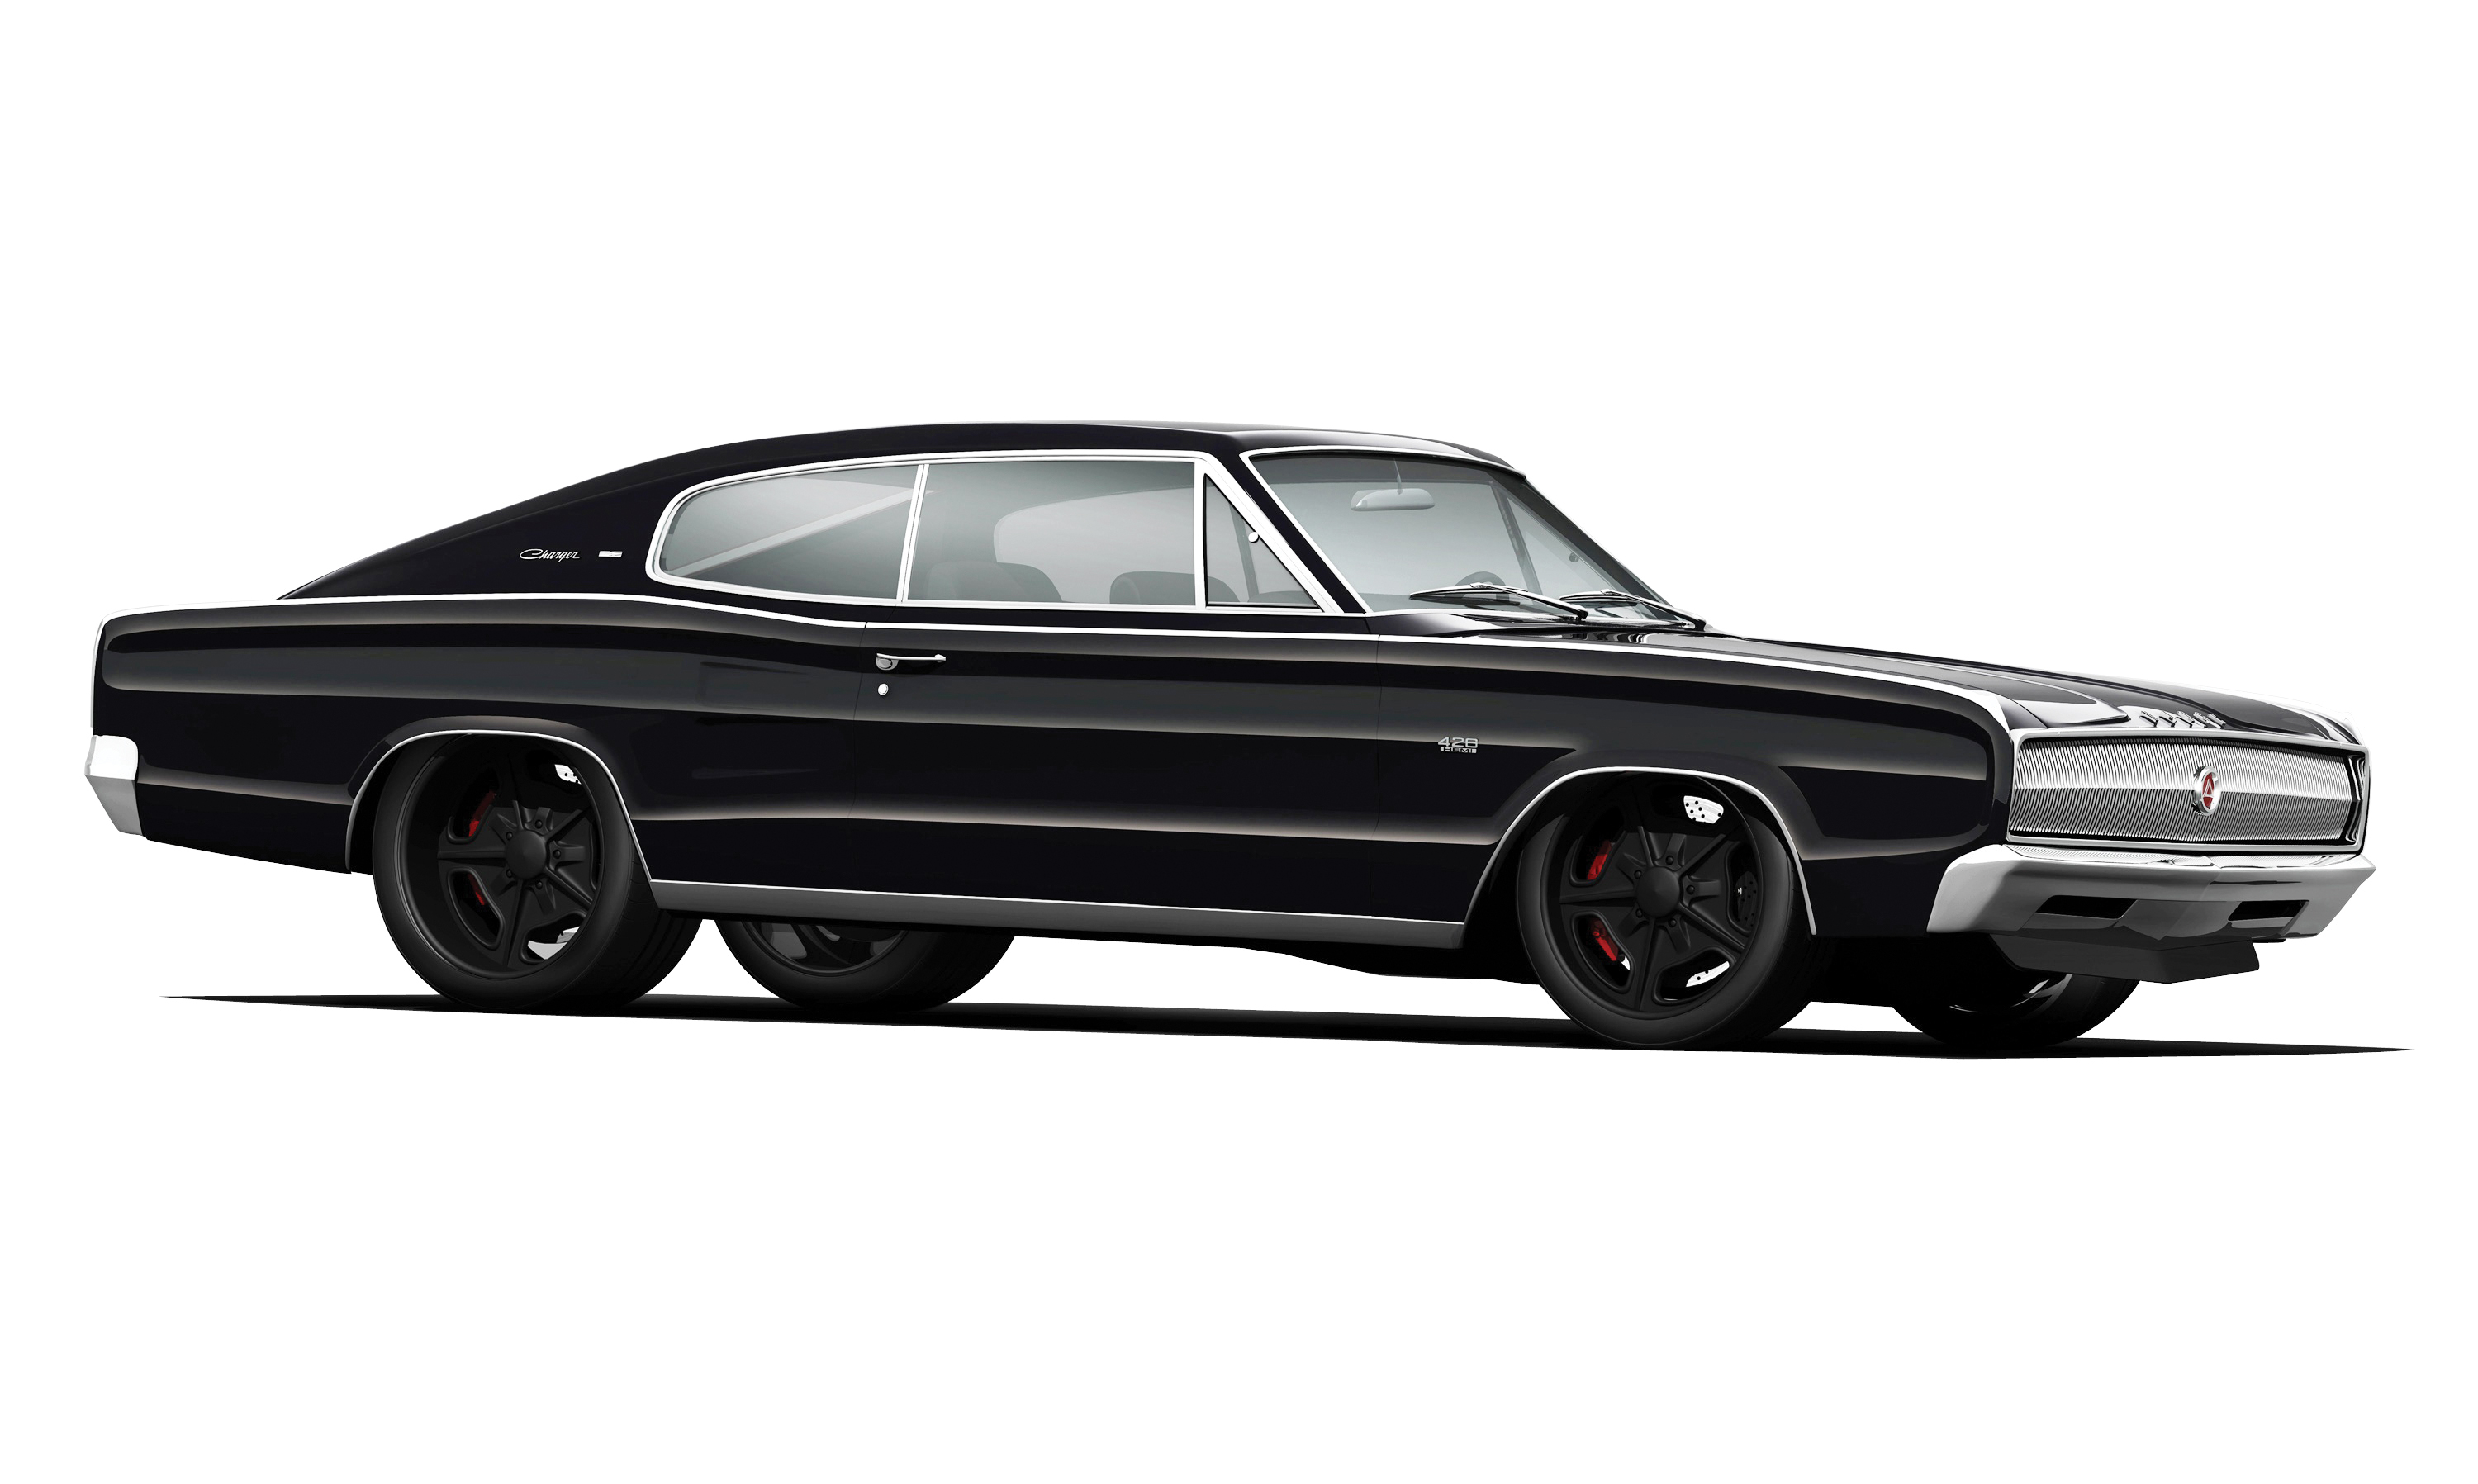 Depending on how deft our pressman at the printing plant is, you may or may not be able to make out the shape and size of the black wheels in the top rendering. The second one shows a dark—but not black—wheel center, and a vibey red pinstripe. Stealthy, without disappearing.